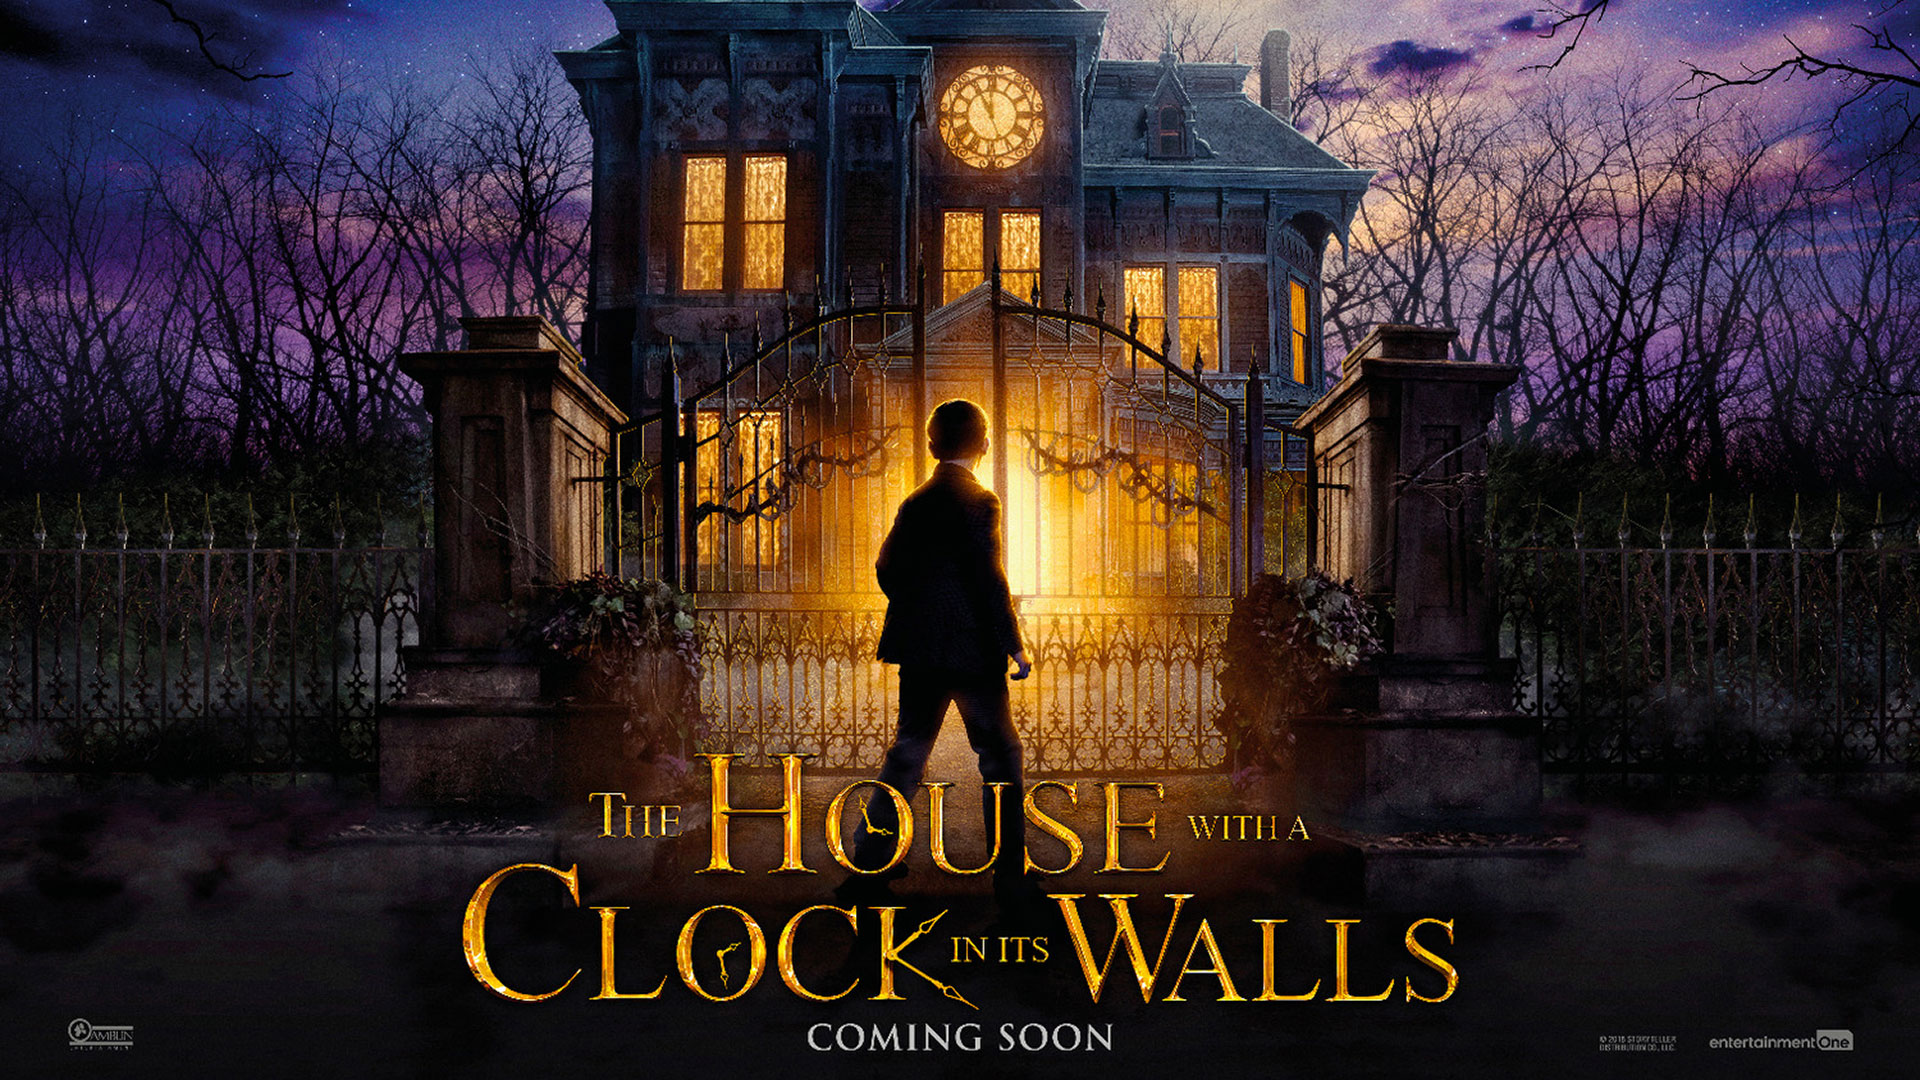 'House with a Clock in Its Walls, The' - landscape artwork